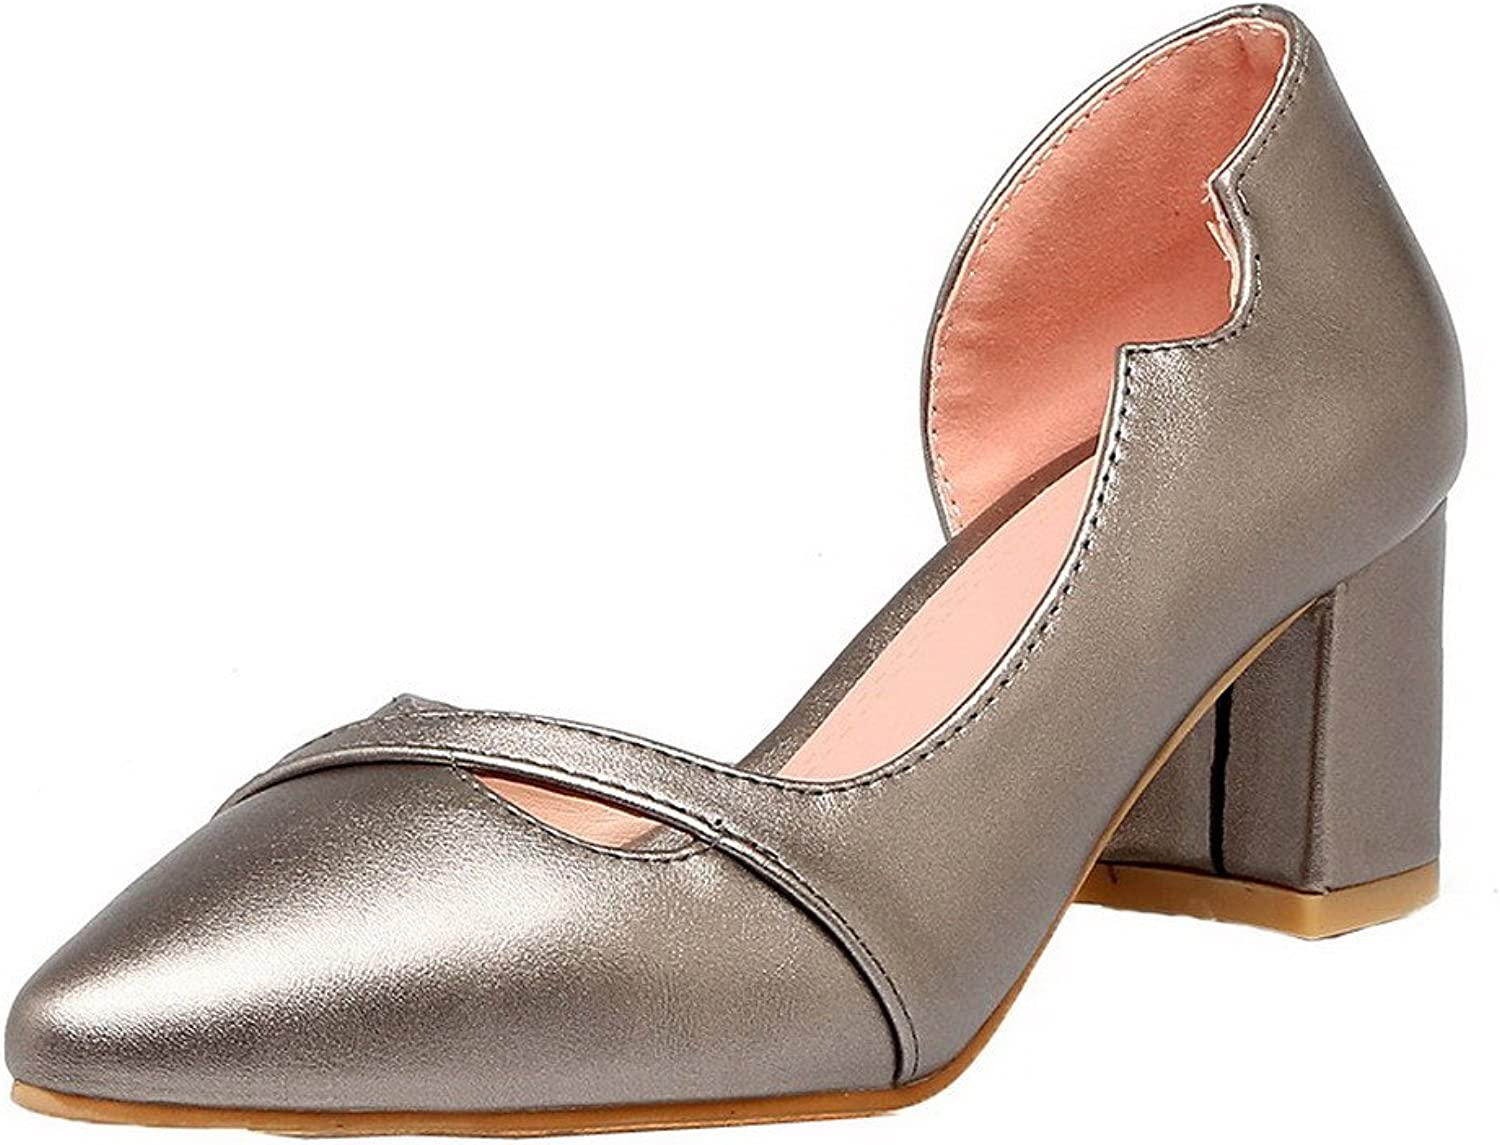 WeiPoot Women's Pointed-Toe Pull-On Kitten-Heels PU Solid Pumps-shoes